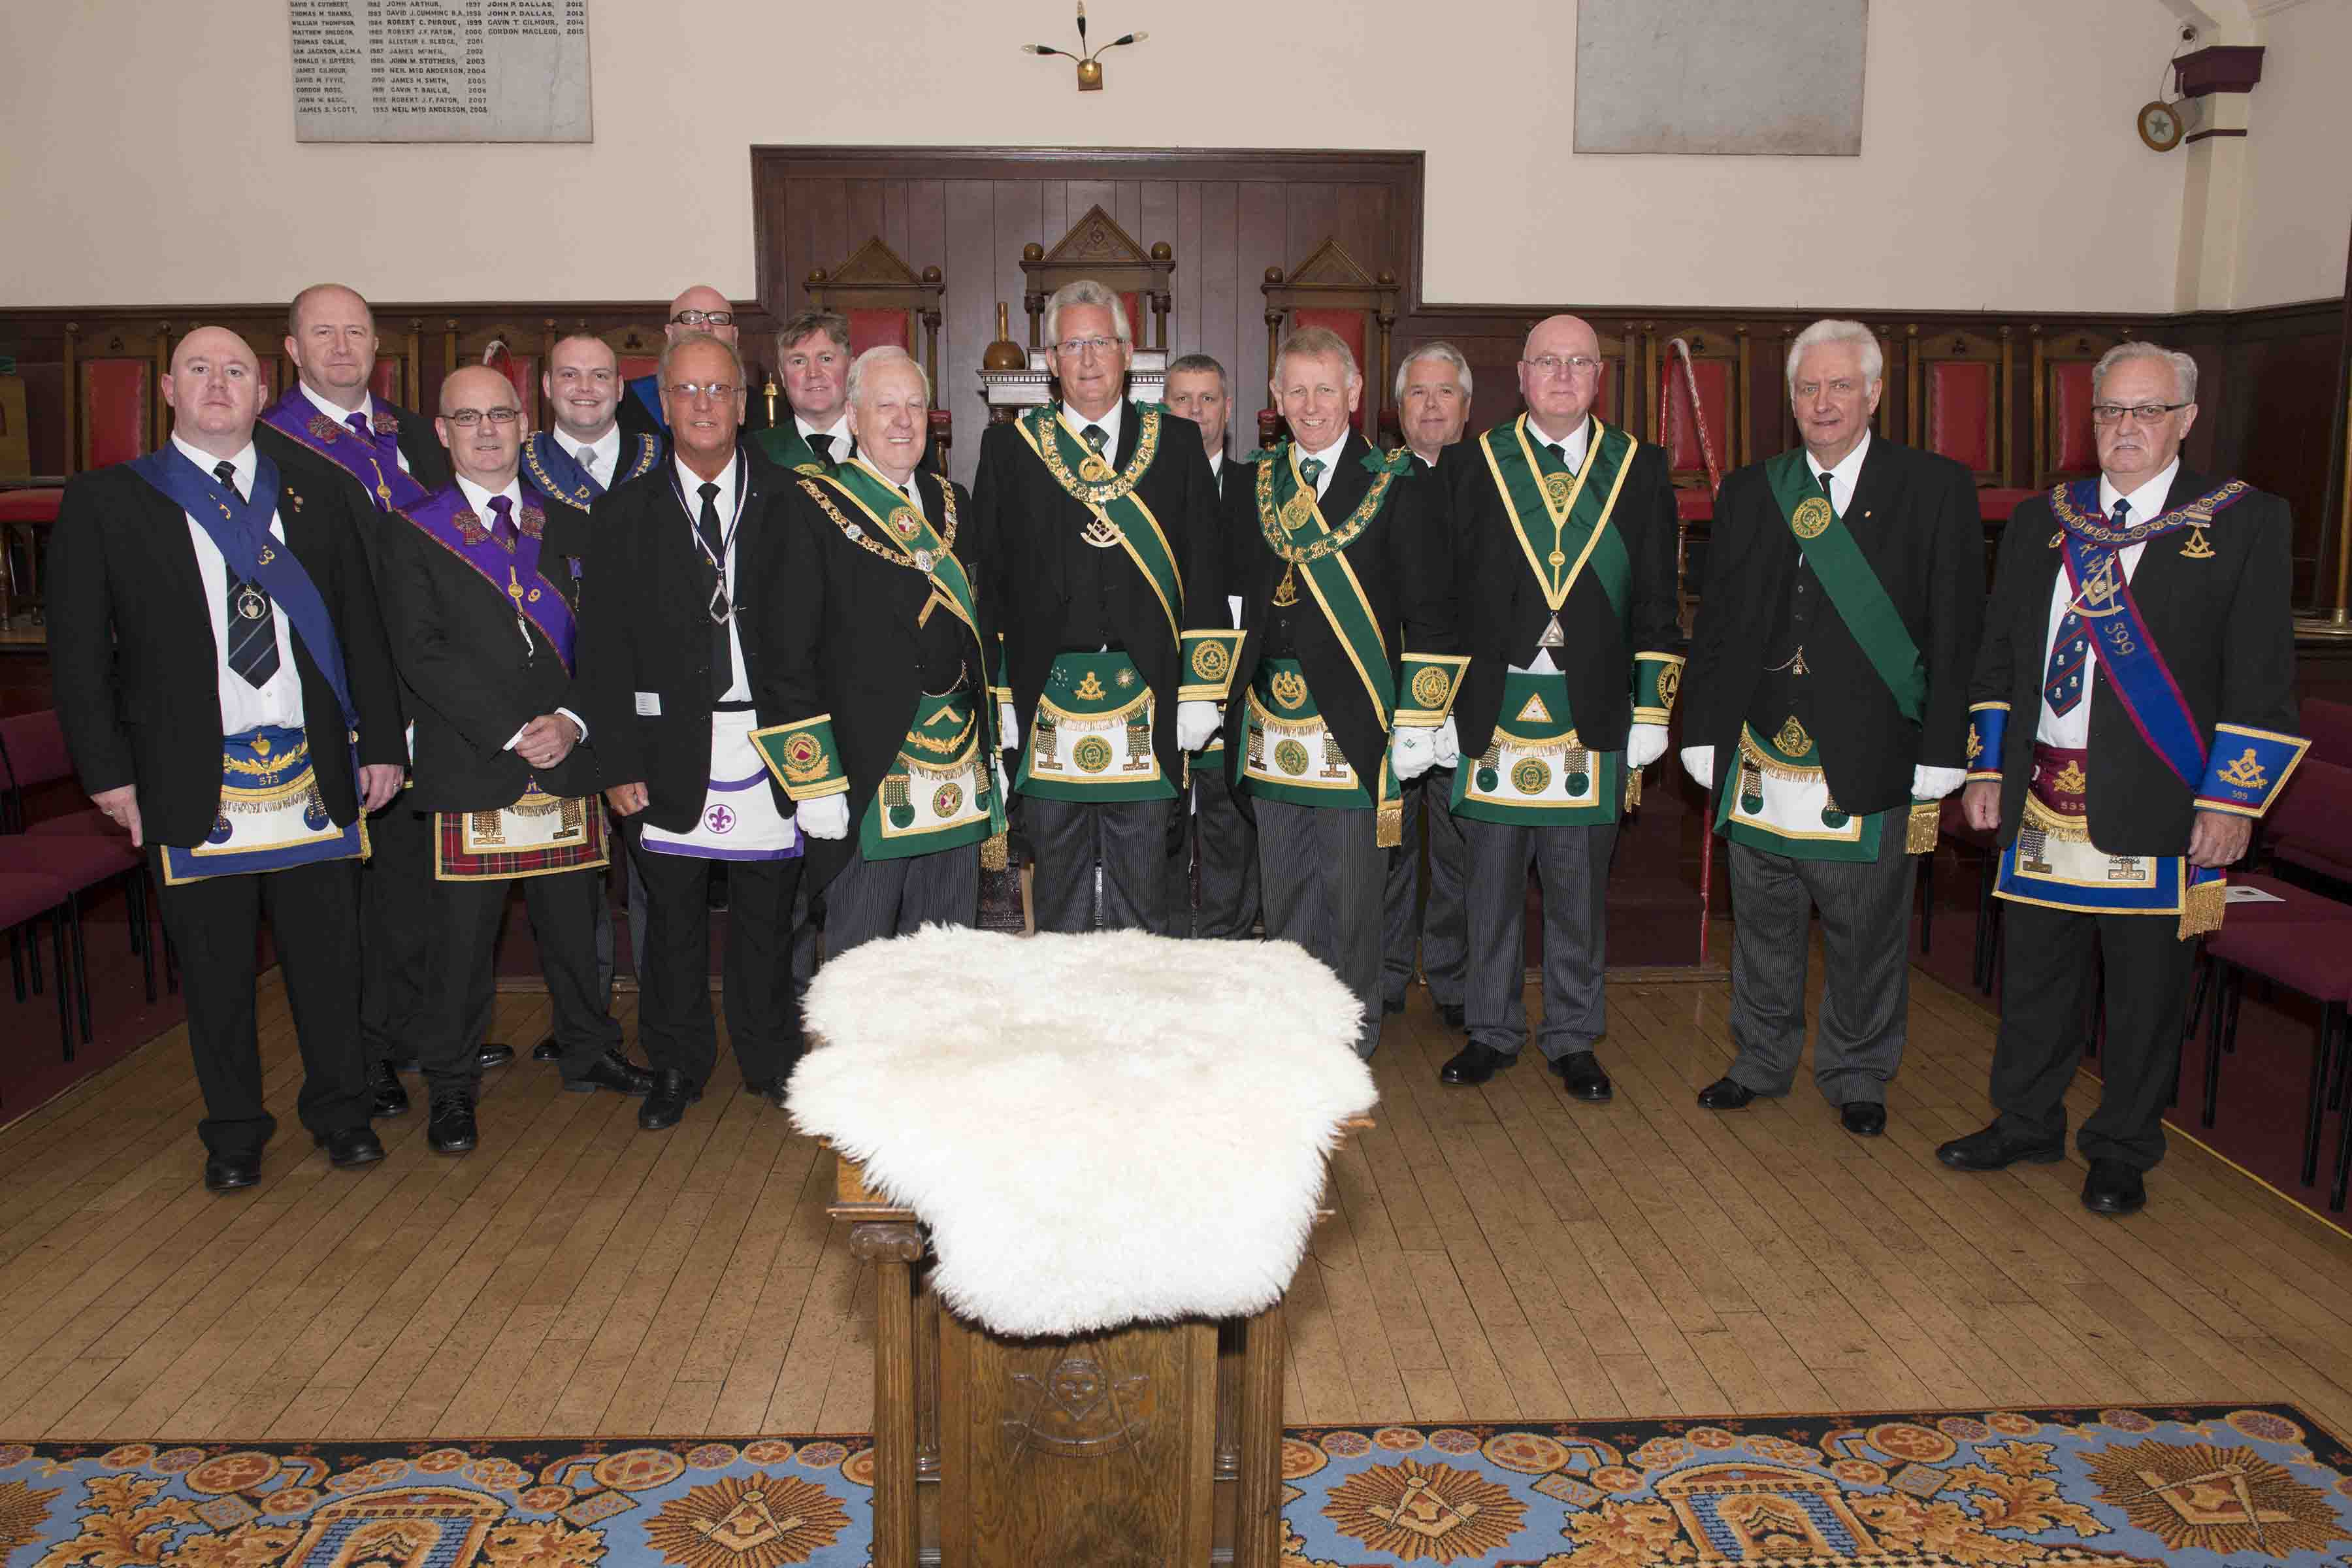 lodge Prince of wales 426 110616